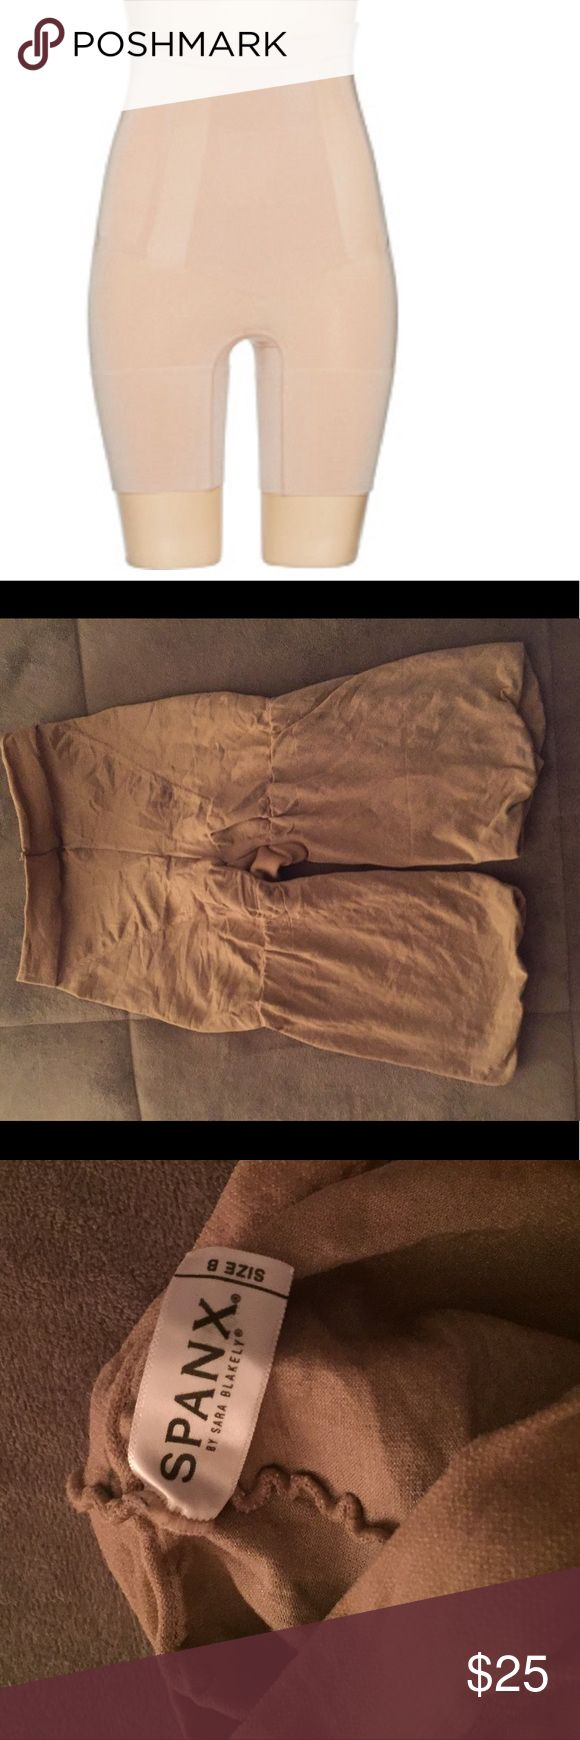 🎉New Spanx thigh butt stomach shape wear shorts New thigh butt and stomach shaping shorts these are the best of the best in shape wear these are authentic SPANX size B in nude I wear mine with everything including jeans smooths everything out and lifts everything up I never wore these I had to purchase the next size up these are NEW SPANX Intimates & Sleepwear Shapewear